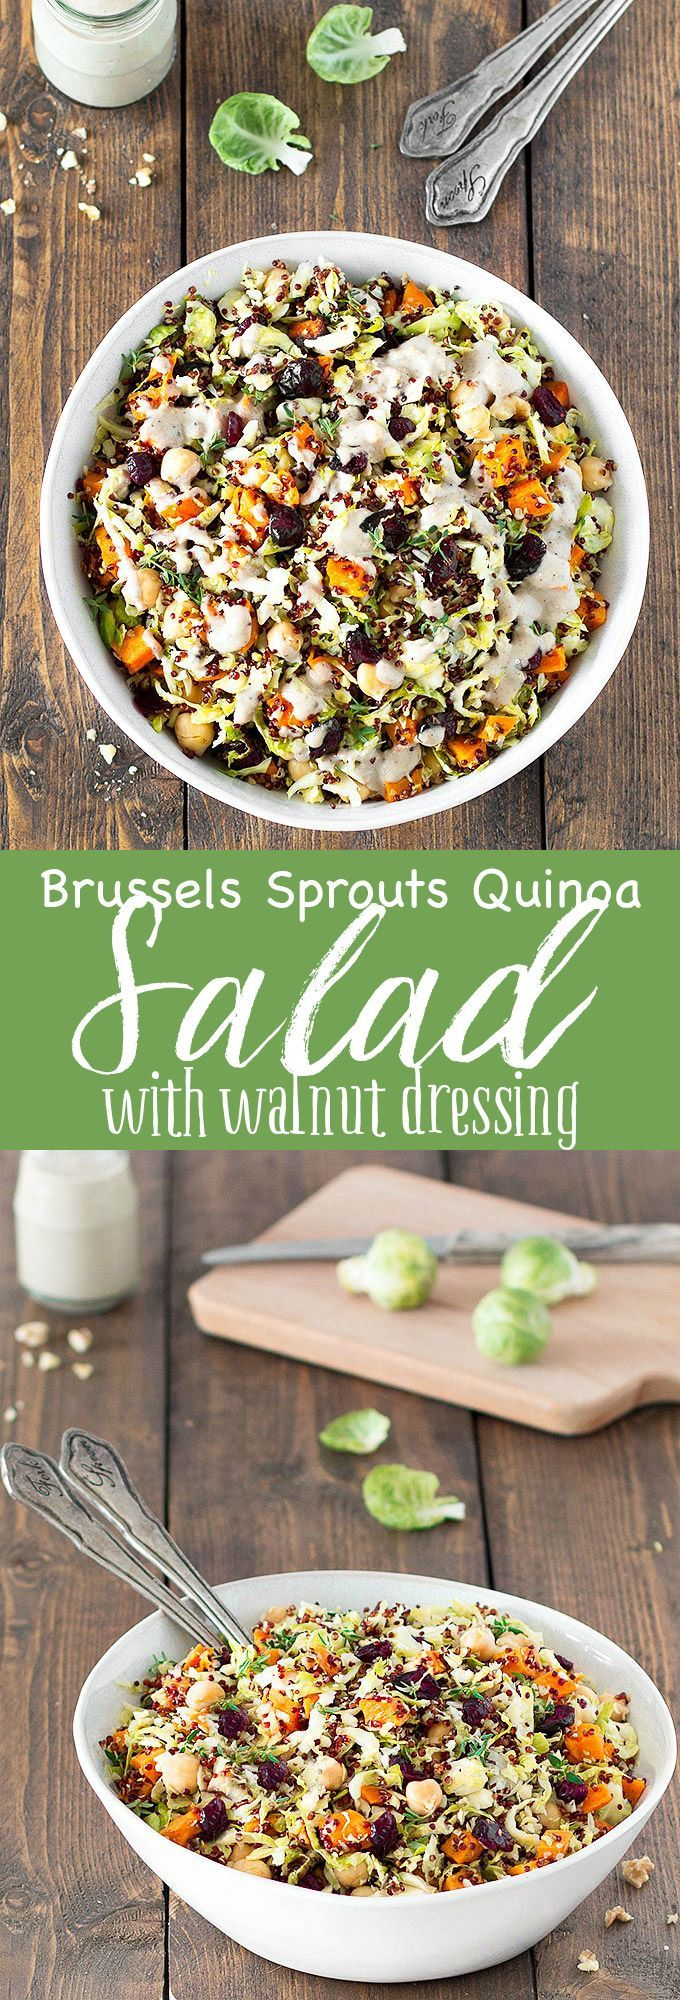 This hearty chopped Brussels sprout quinoa salad features tender roasted sweet potato, buttery chickpeas, sweet cranberries, crunchy walnuts and a delicious walnut dressing.